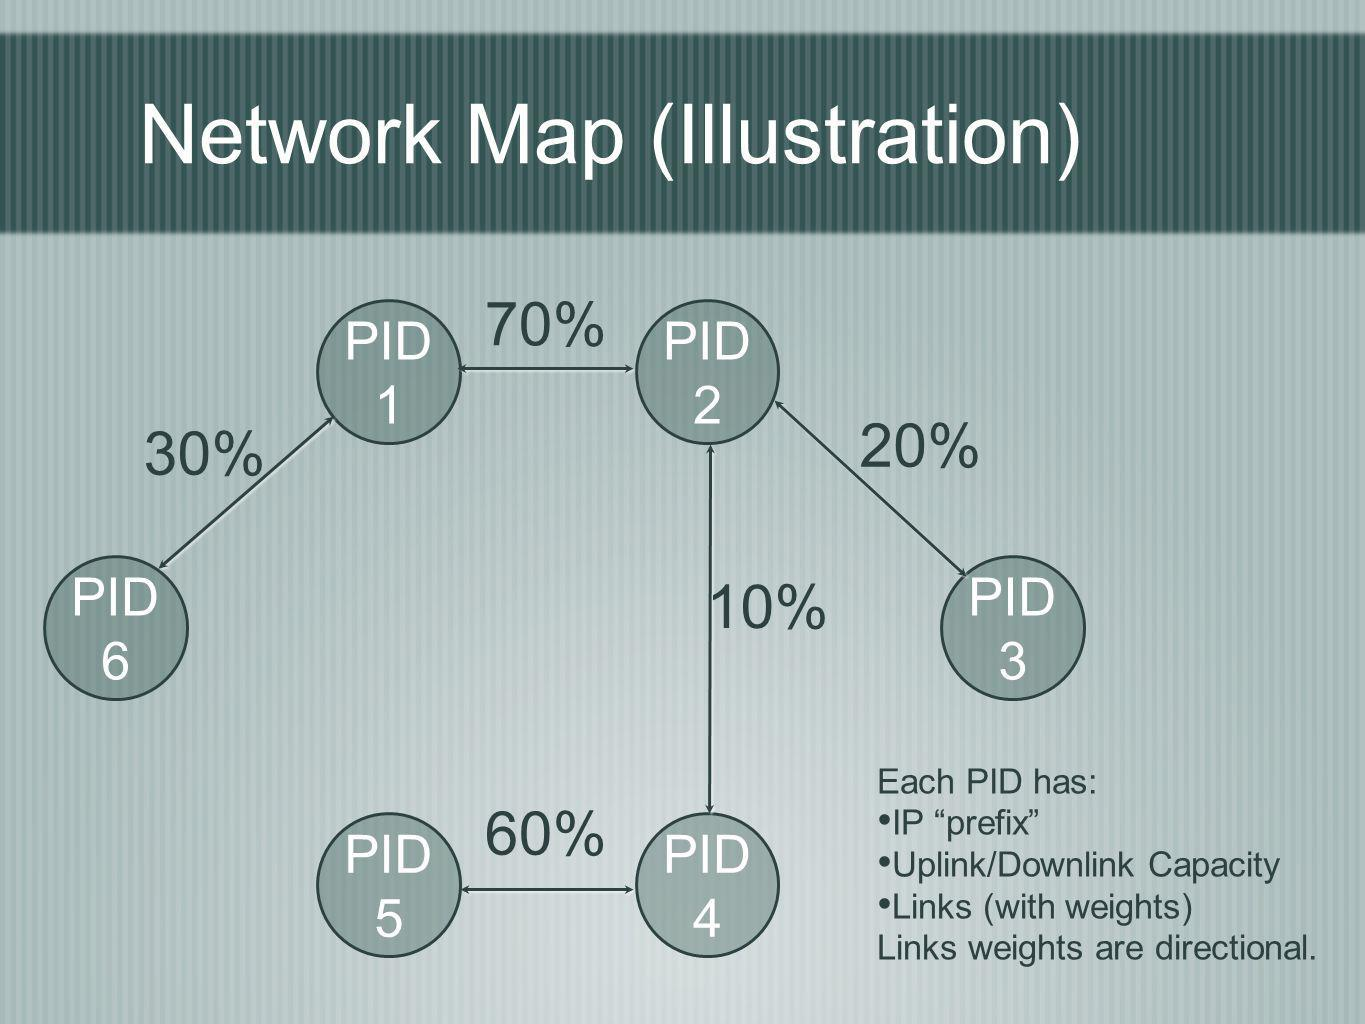 Network Map (Illustration) PID 1 PID 2 PID 3 PID 6 PID 5 PID 4 70% 20% 30% 10% 60% Each PID has: IP prefix Uplink/Downlink Capacity Links (with weights) Links weights are directional.